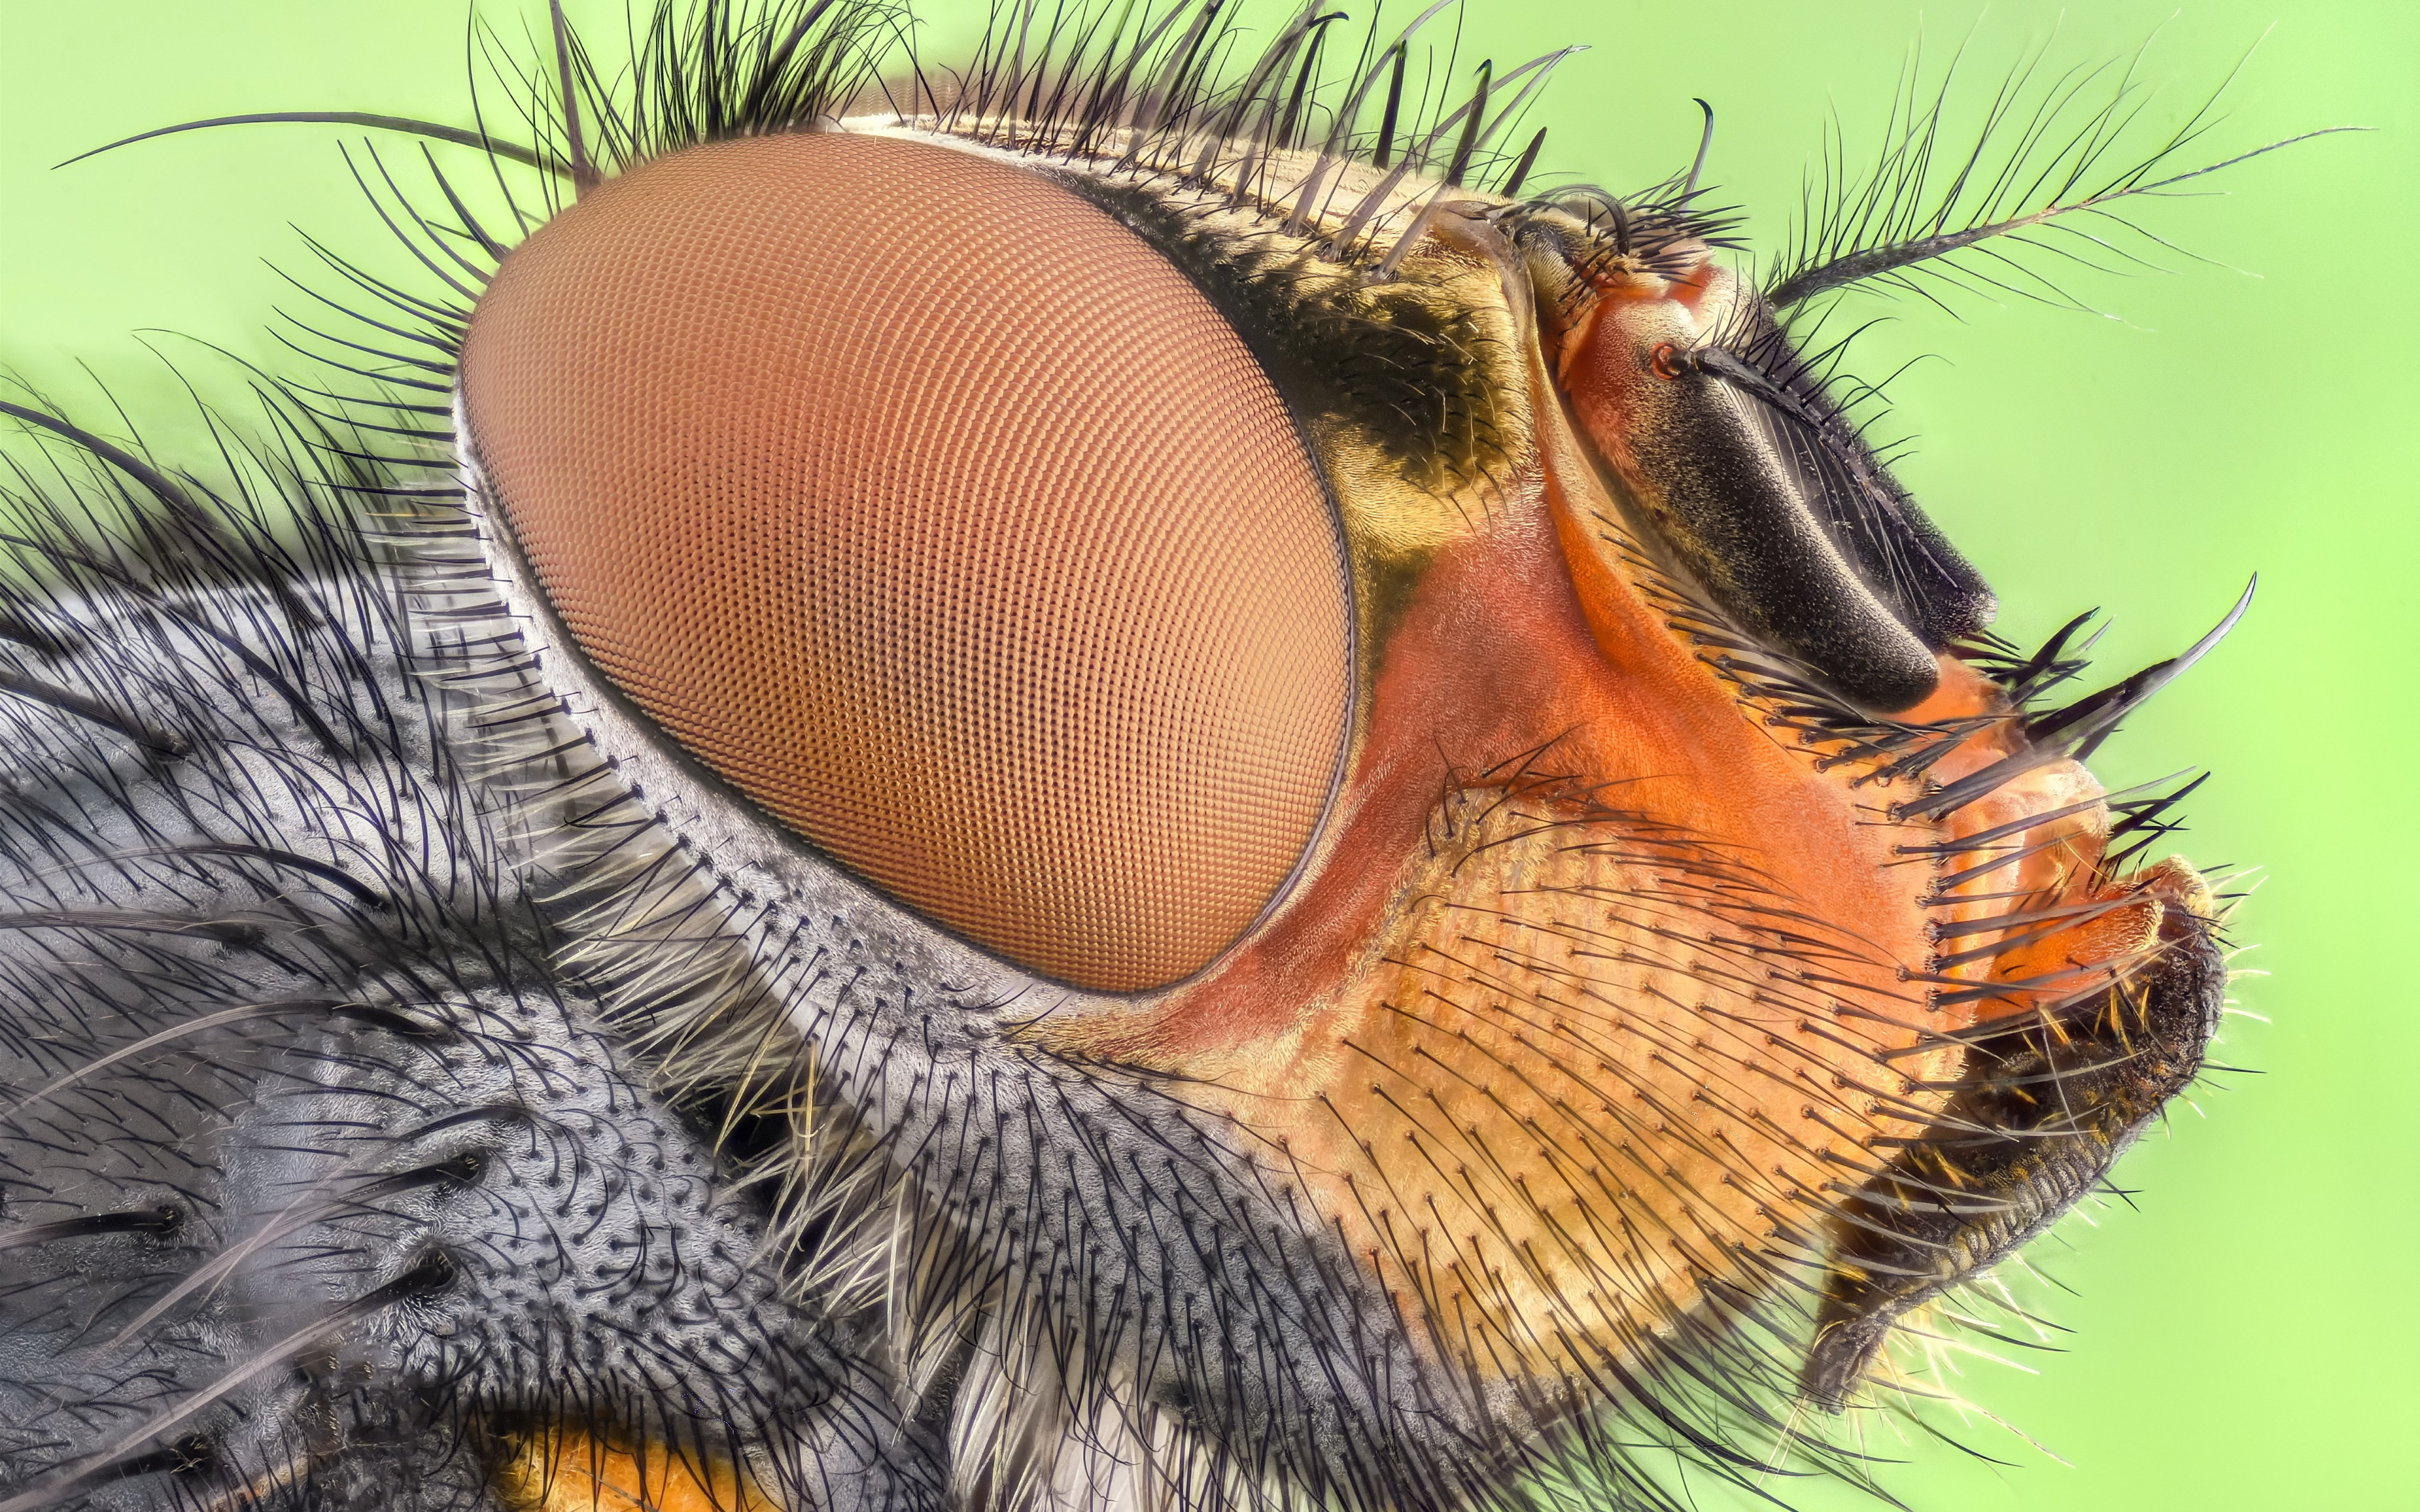 Close up insect portrait | 3840x2400 wallpaper